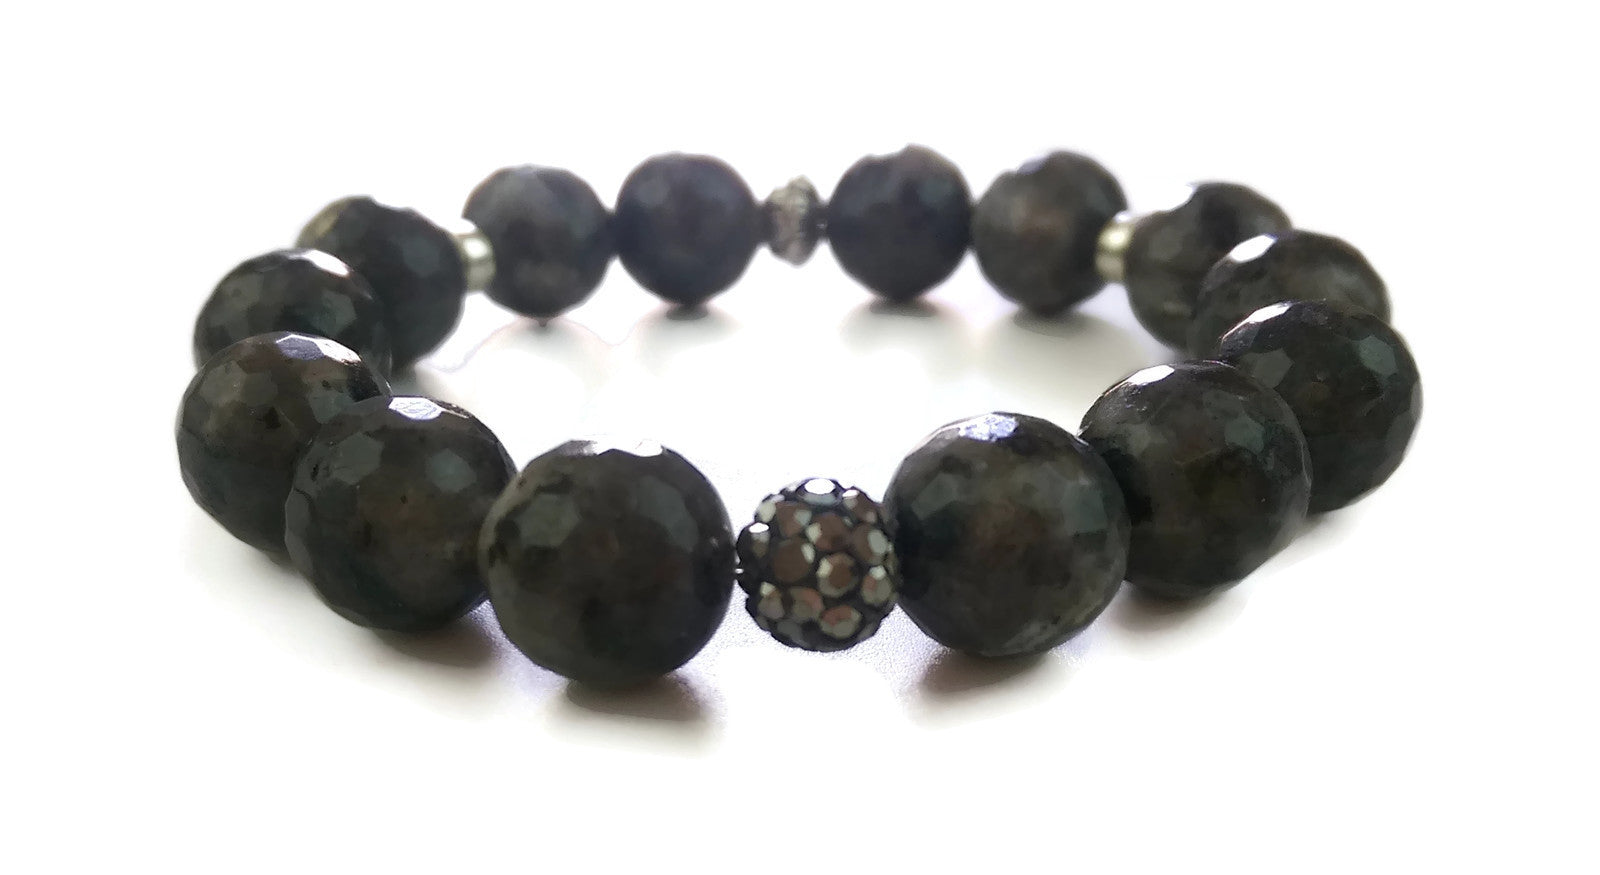 14mm Faceted Labradorite and Silver Lotus Shamballa Bead Wrist Mala Stretch Bracelet Crown Chakra